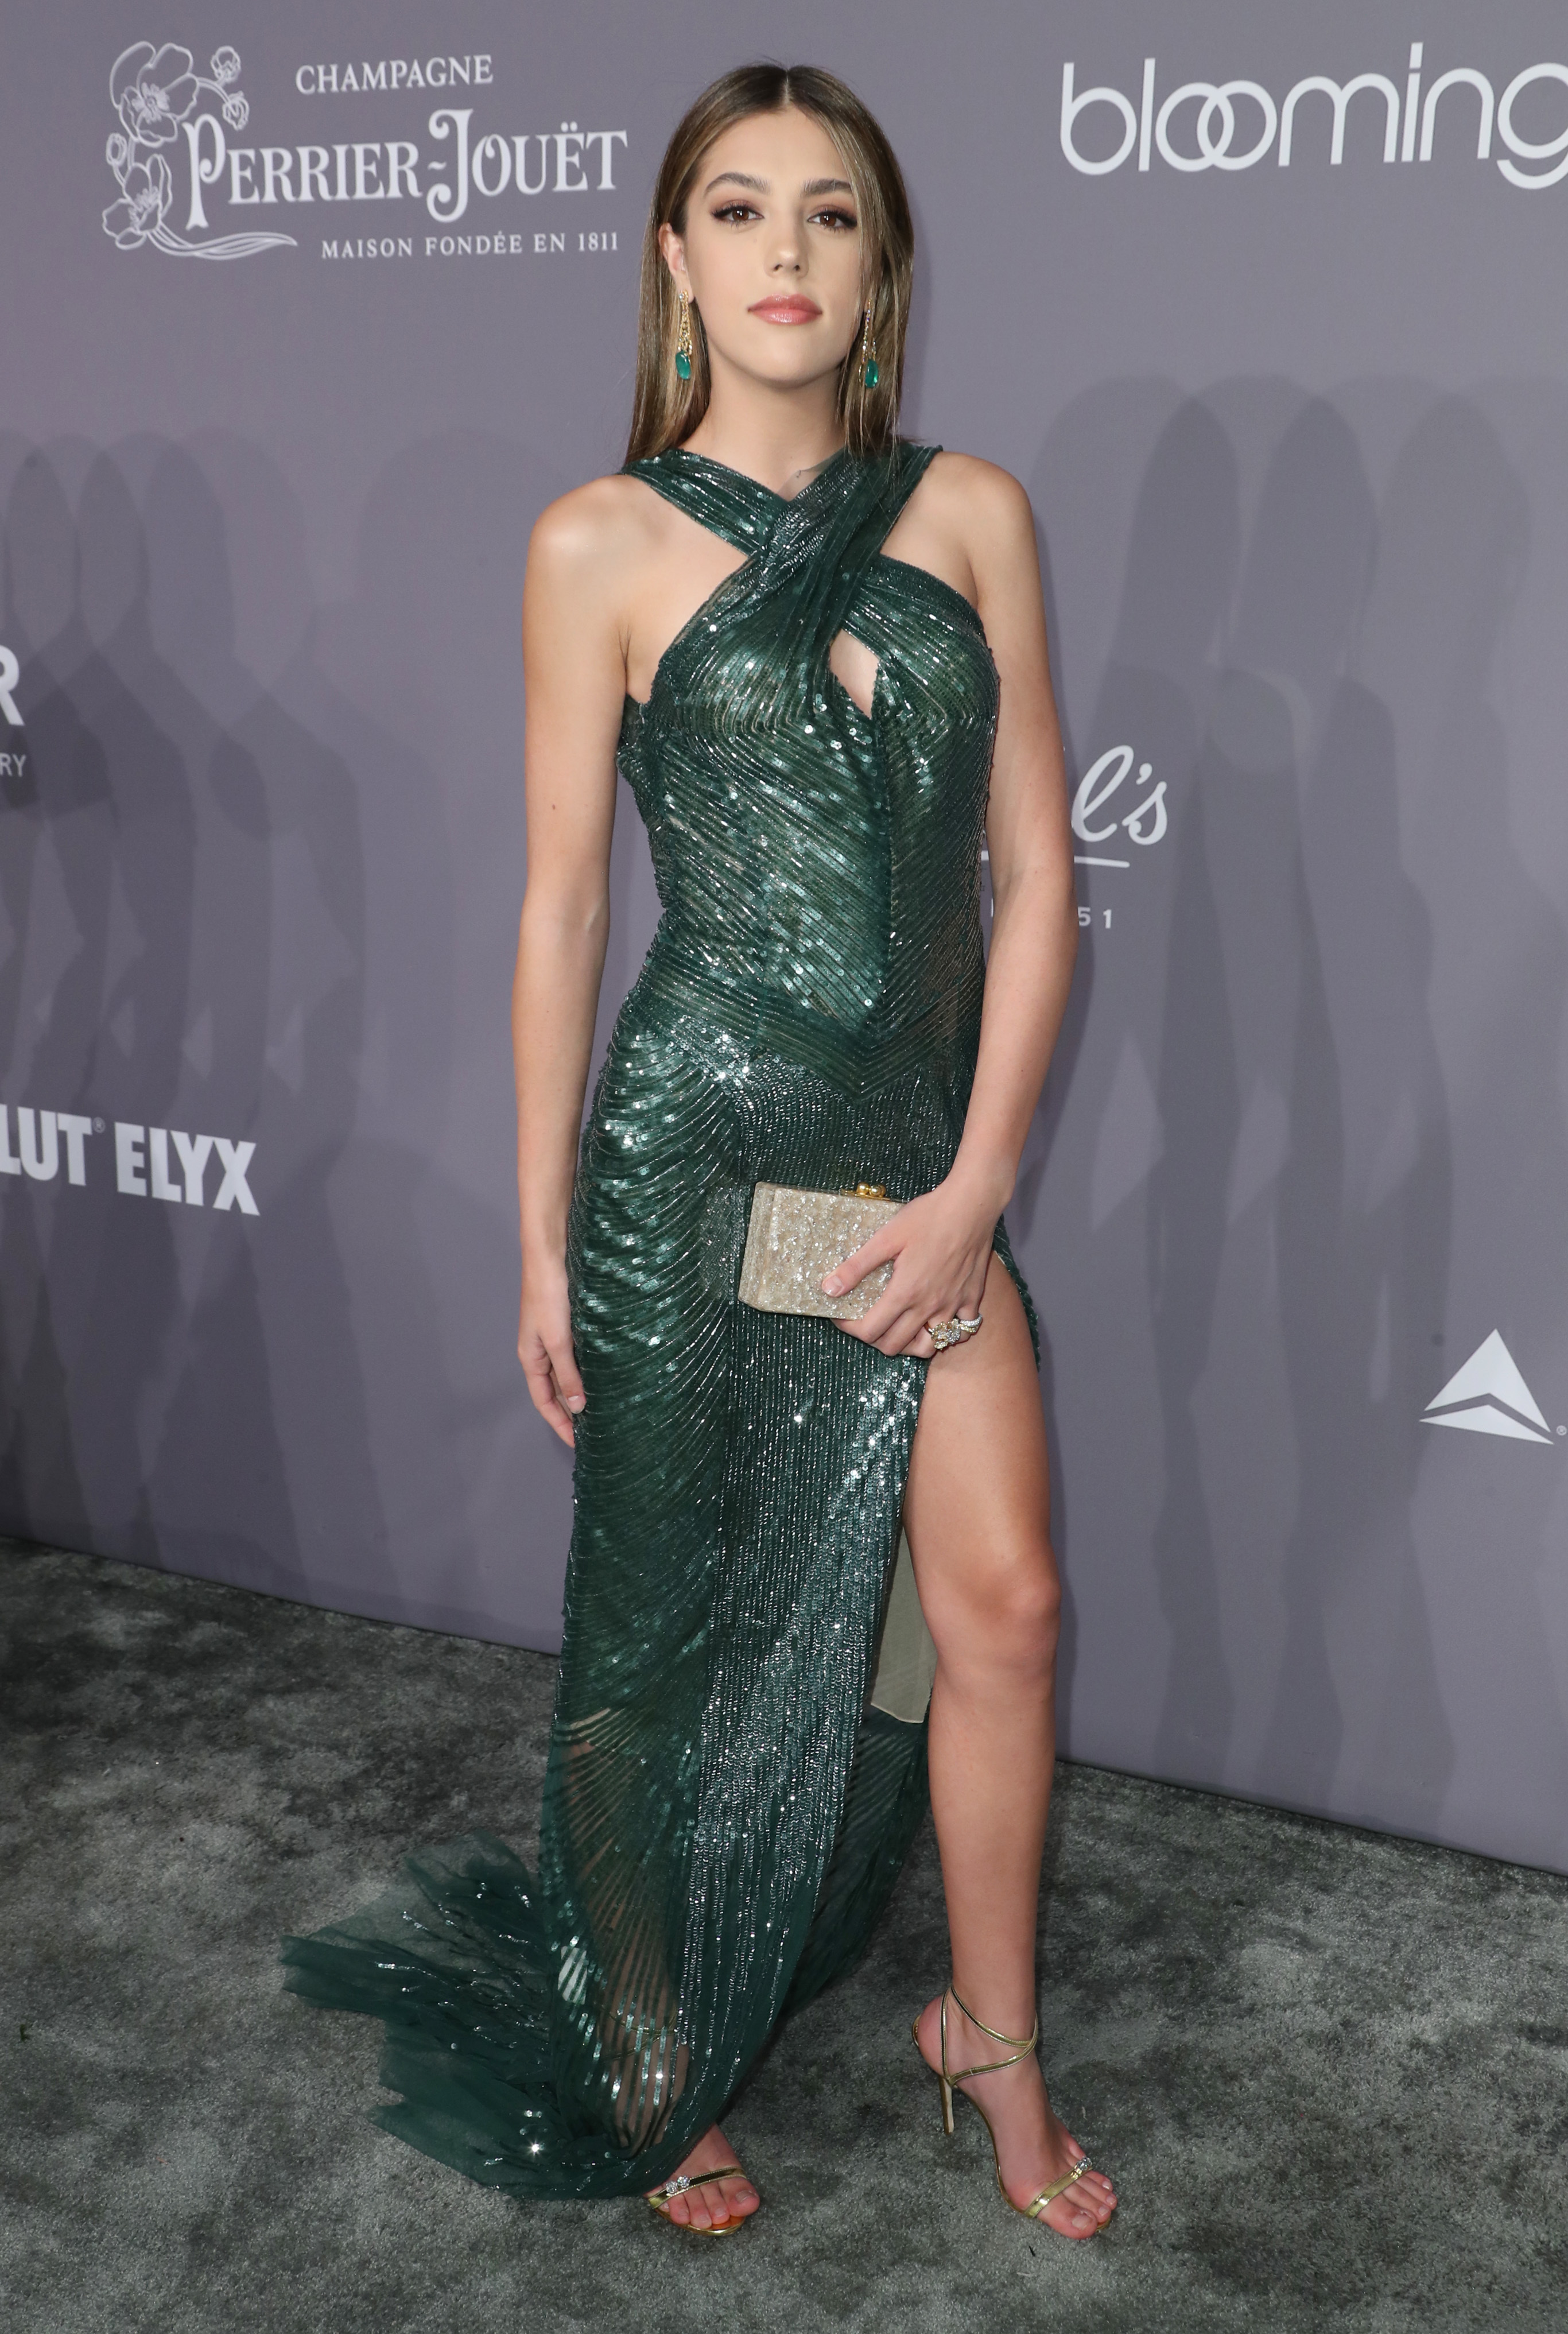 Feet Sistine Stallone naked (32 photos), Pussy, Cleavage, Boobs, braless 2020